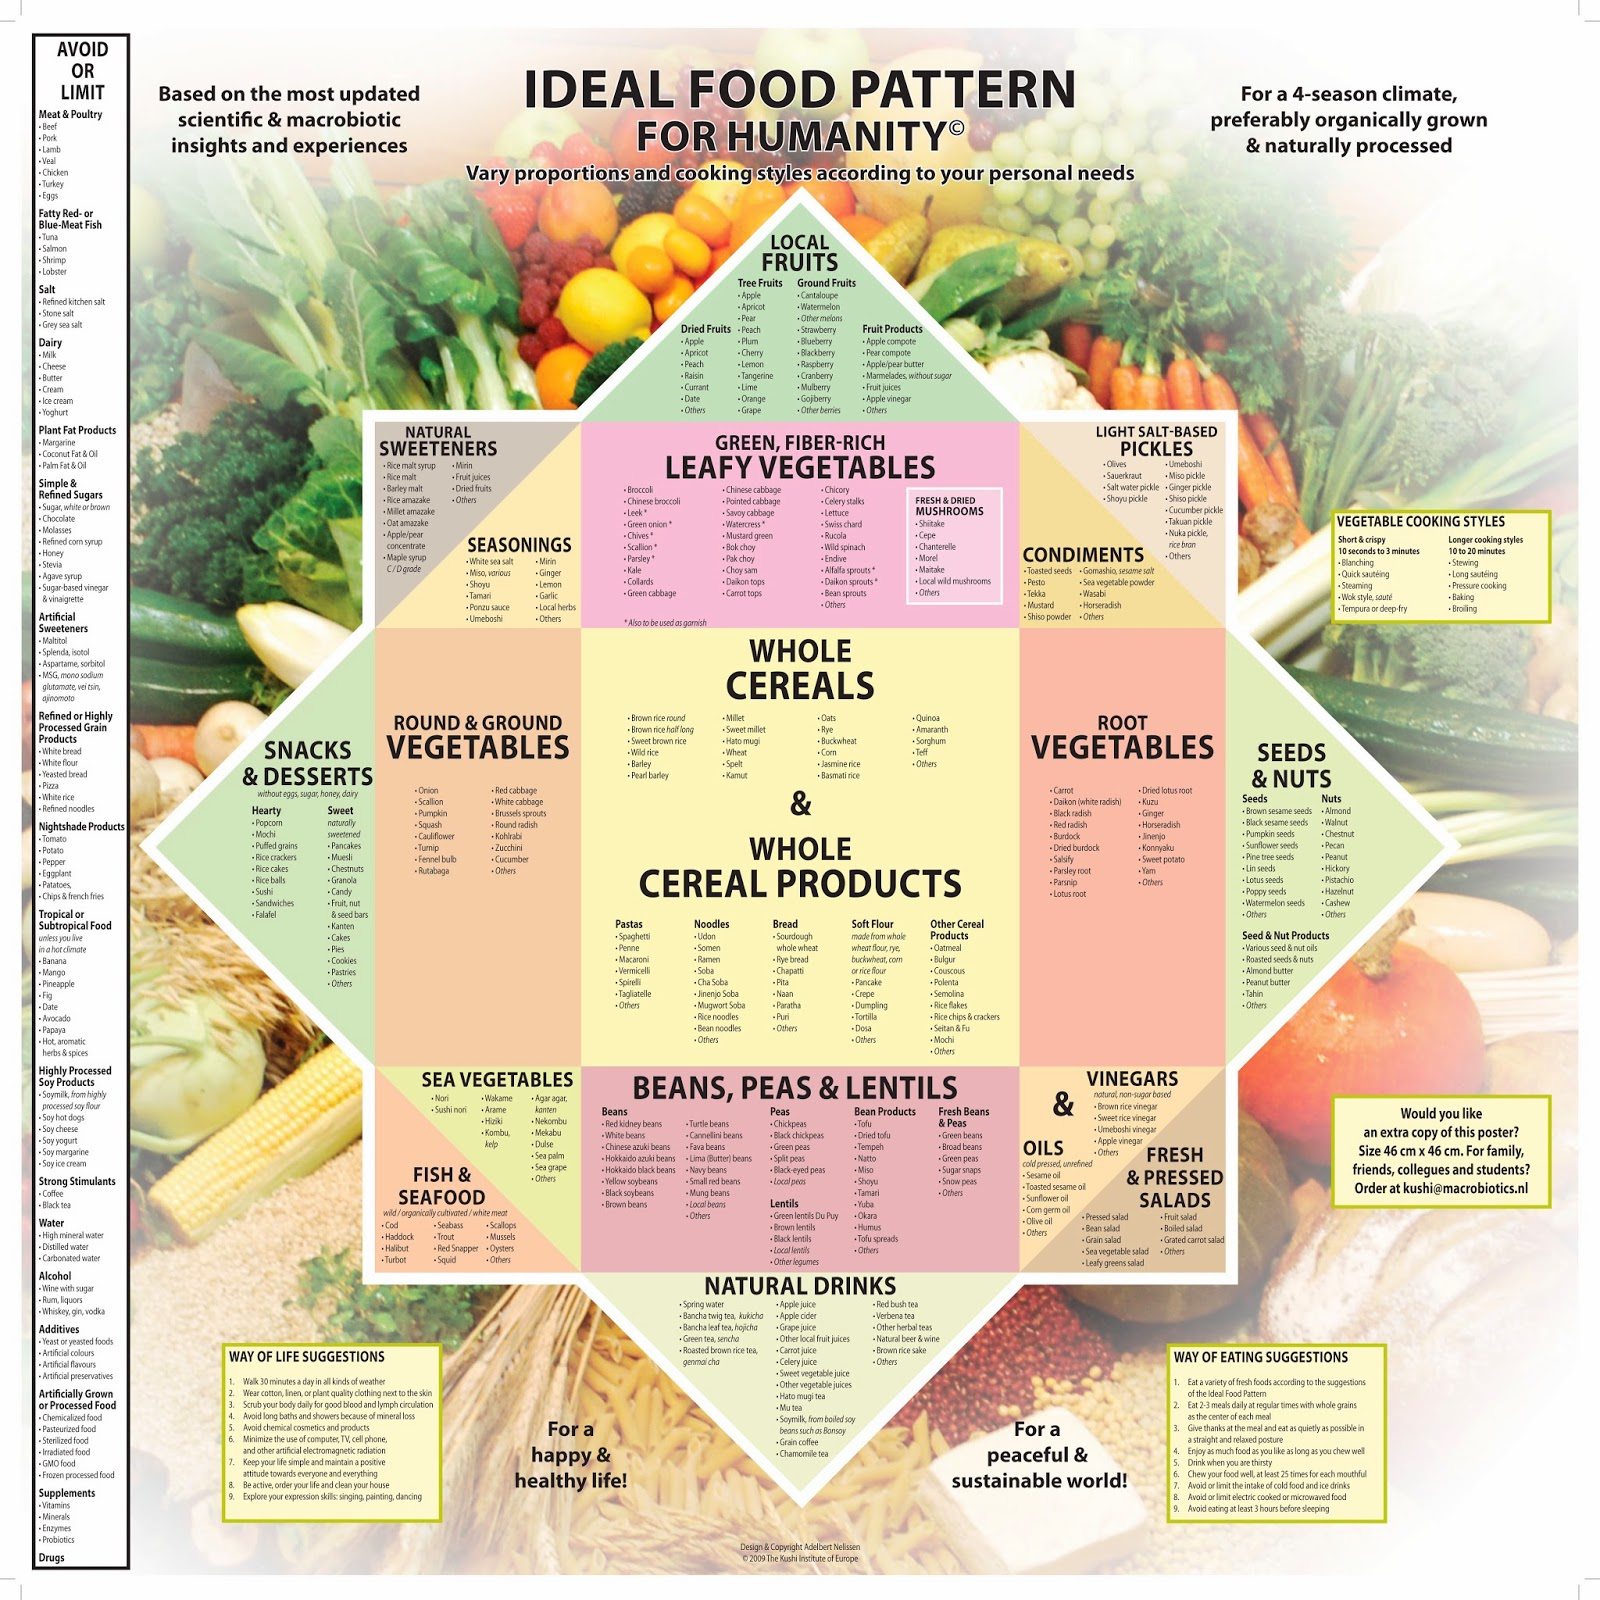 Vegetarian Food Pyramid 2014 on File Loma Linda University Vegetarian Food Pyramid